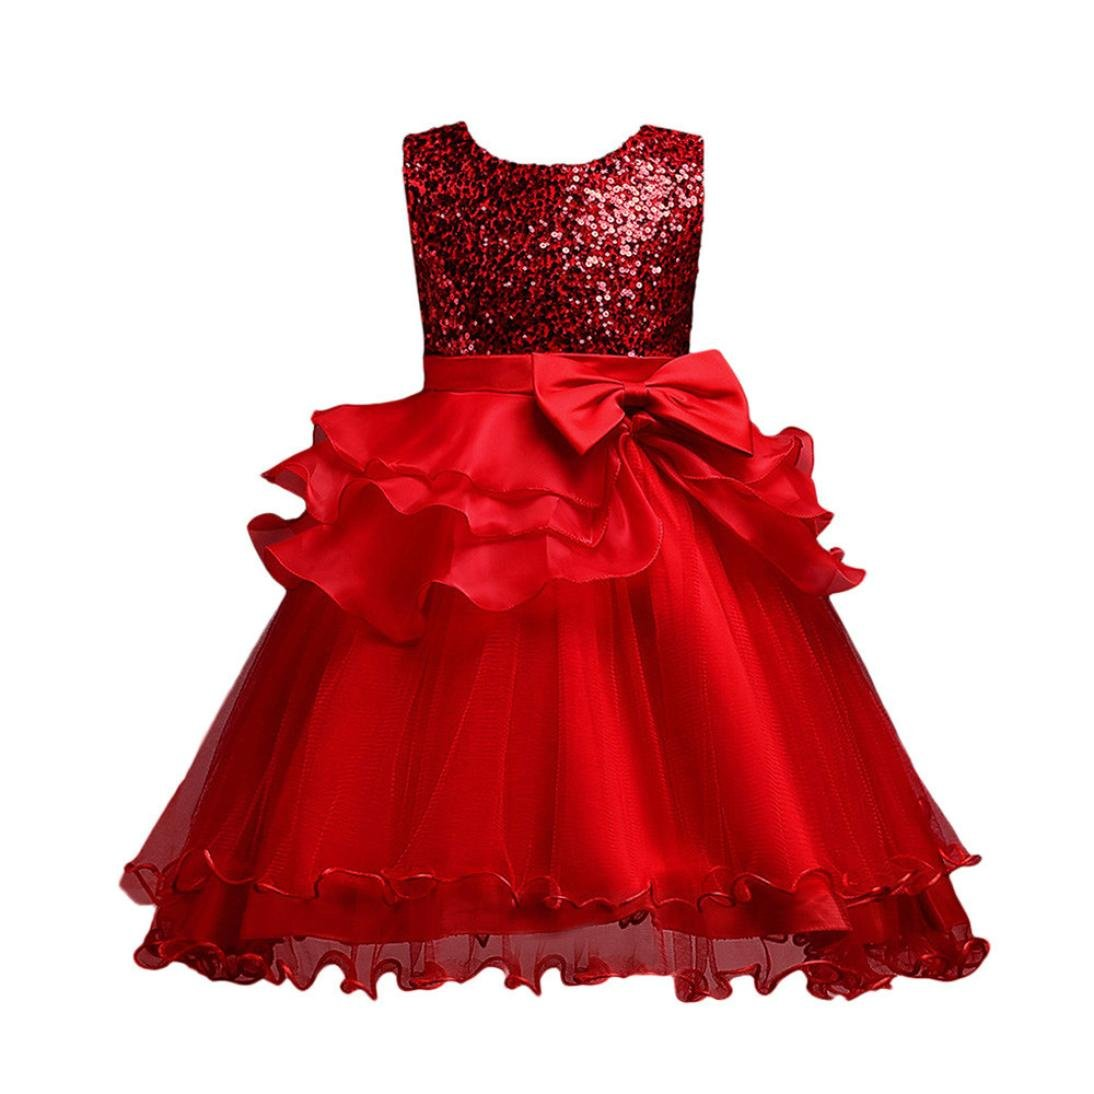 Kobay Girls Sleeveless Bow Sequins Lace Dress Mesh Tutu Dress,Floral Baby Girl Princess Bridesmaid Pageant Gown Birthday Party Wedding Dress Suit for 2-9 Years Princess